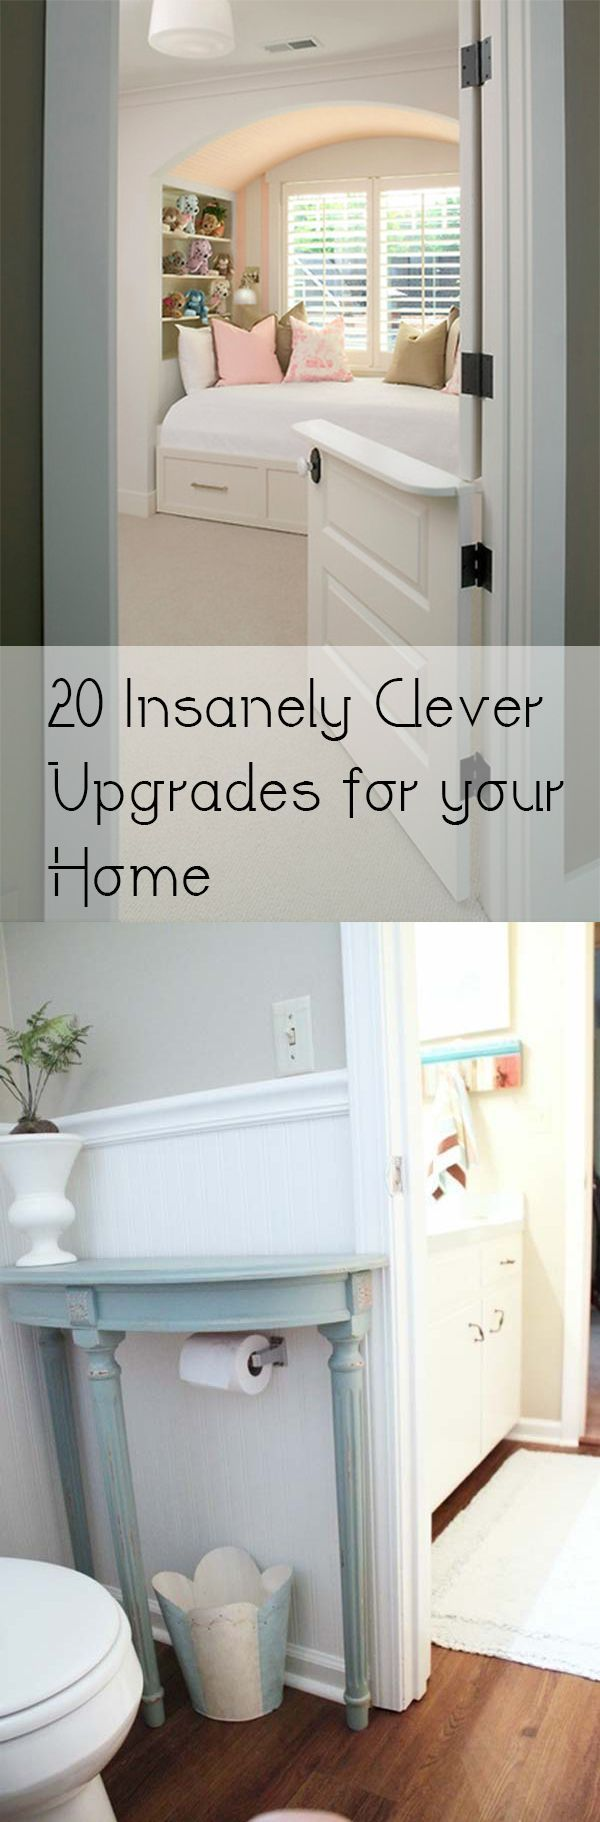 20 Insanely Clever DIY Home Projects for Your Home   Clever, House ...